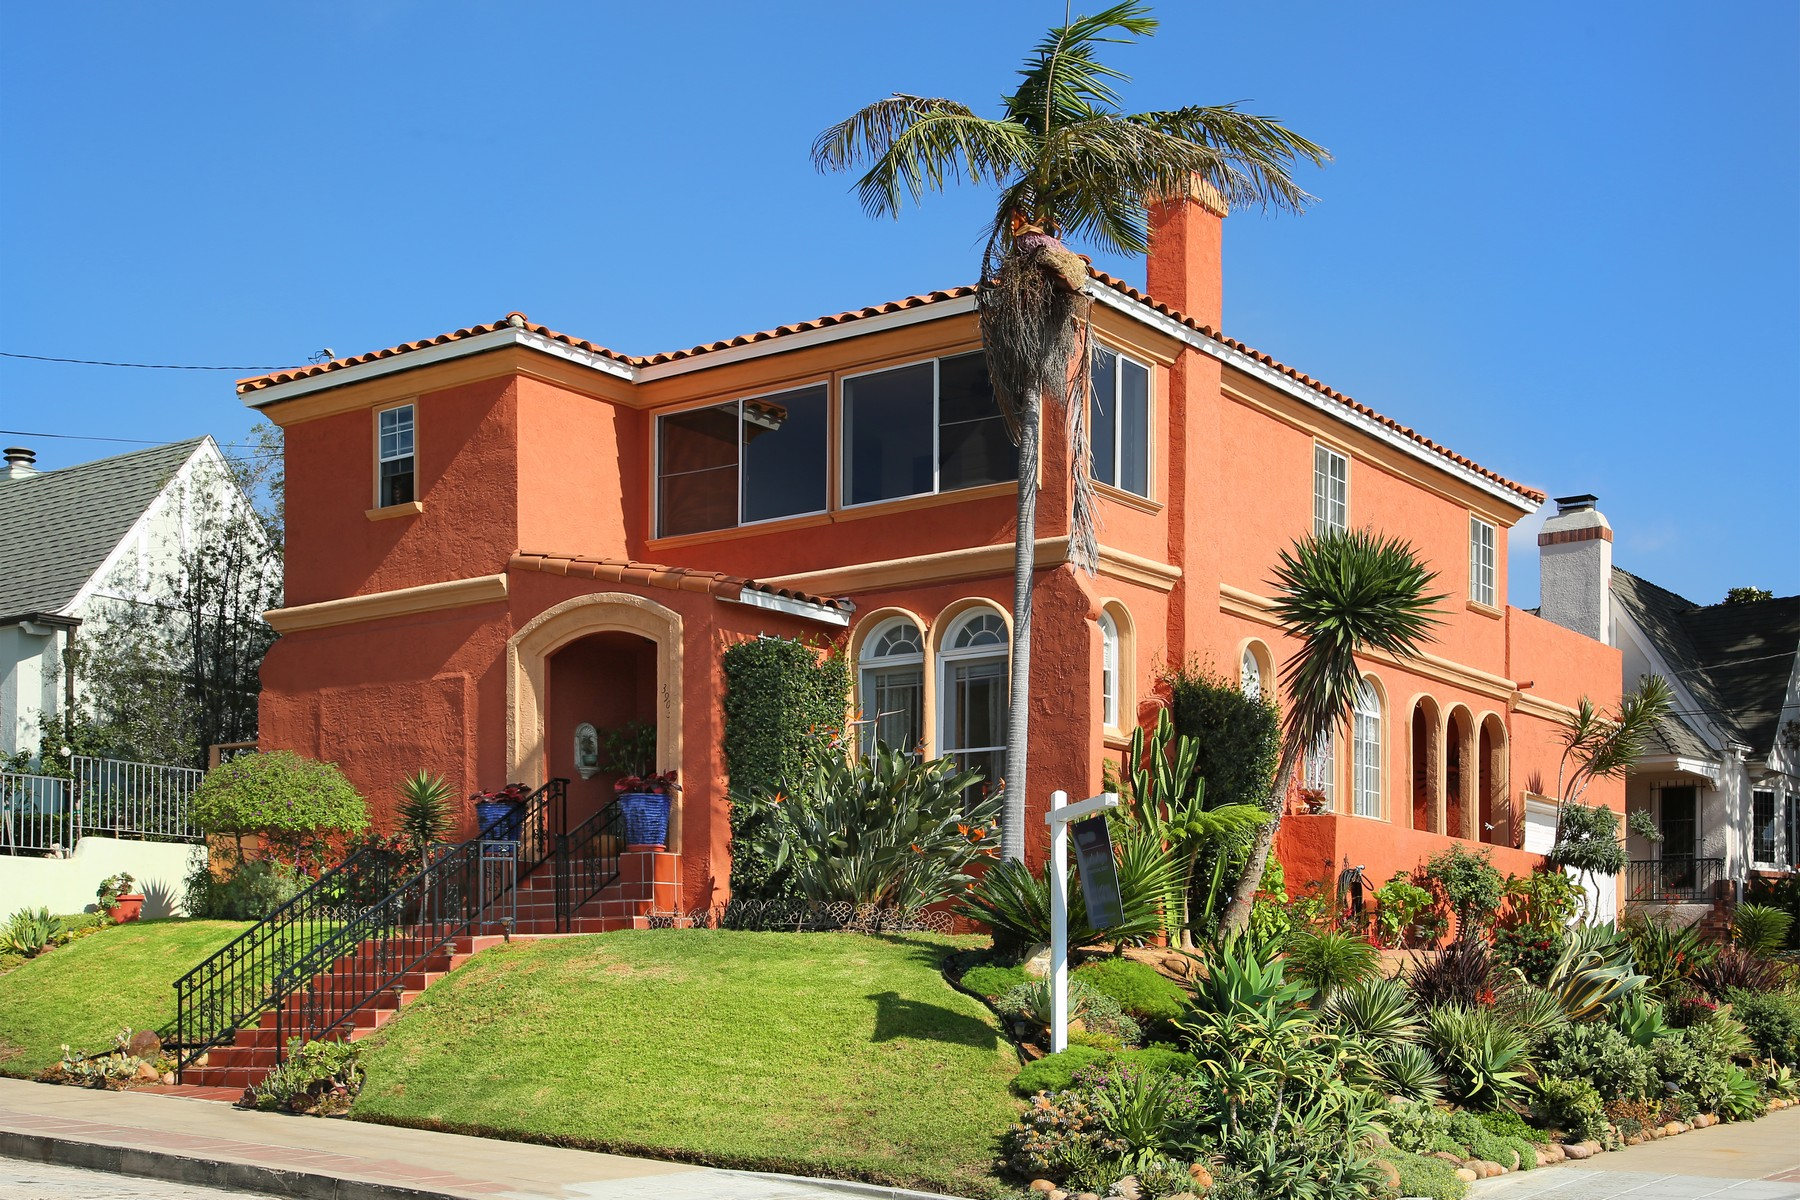 Single Family Home for Sale at 3903 Alameda 3903 Alameda Place Mission Hills, San Diego, California, 92103 United States